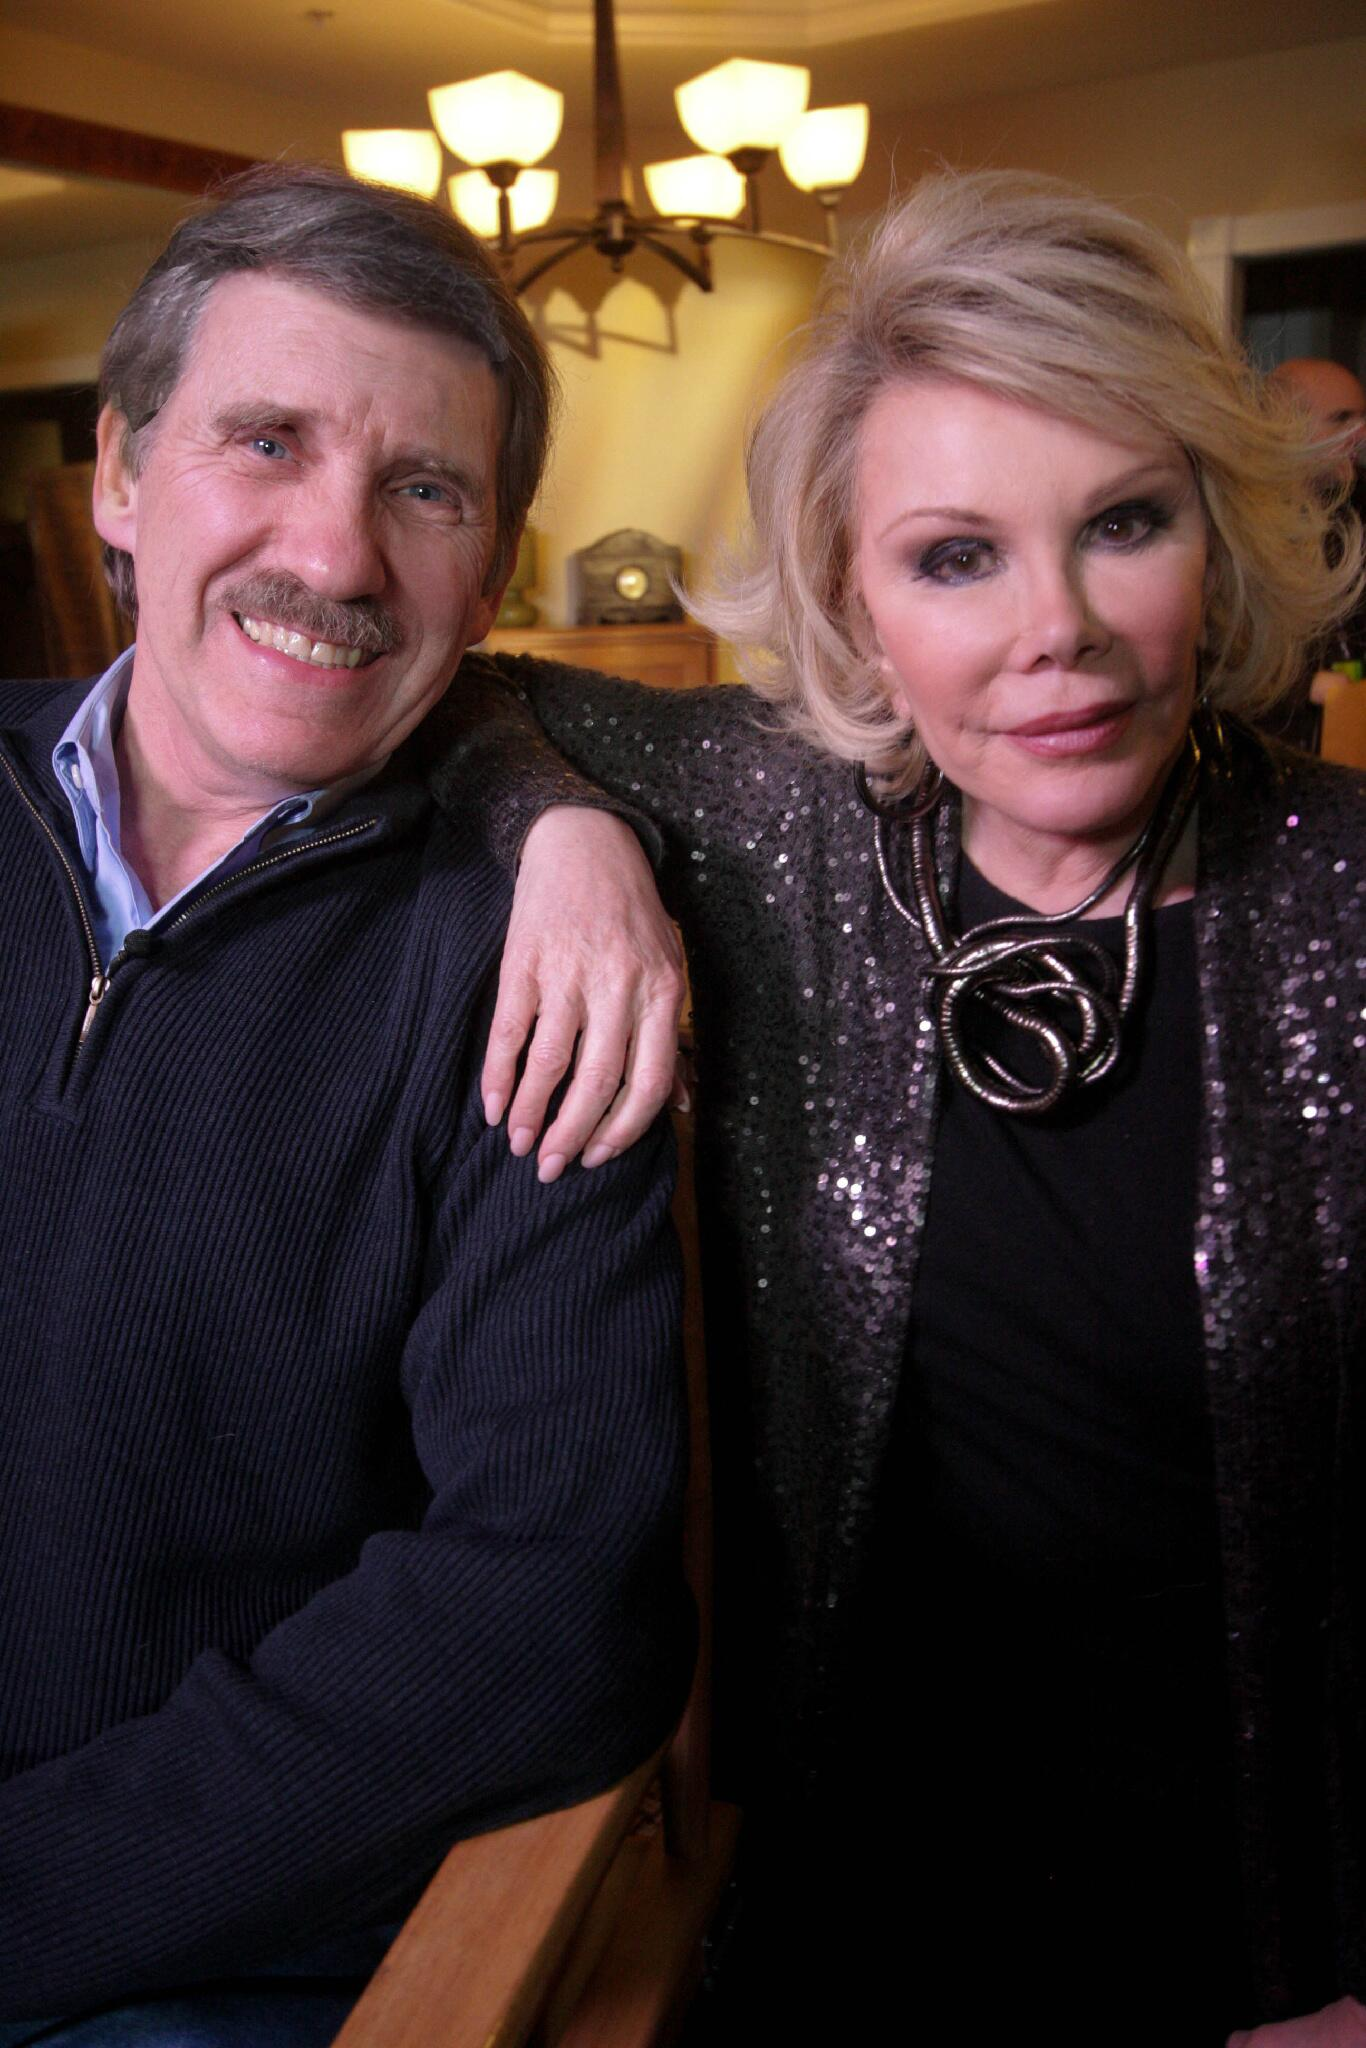 Happy Birthday to Joan Rivers. She skewers pomposity with a sharp comic blade. Get closer, and you'll know her heart. http://t.co/dwVghv0sOQ